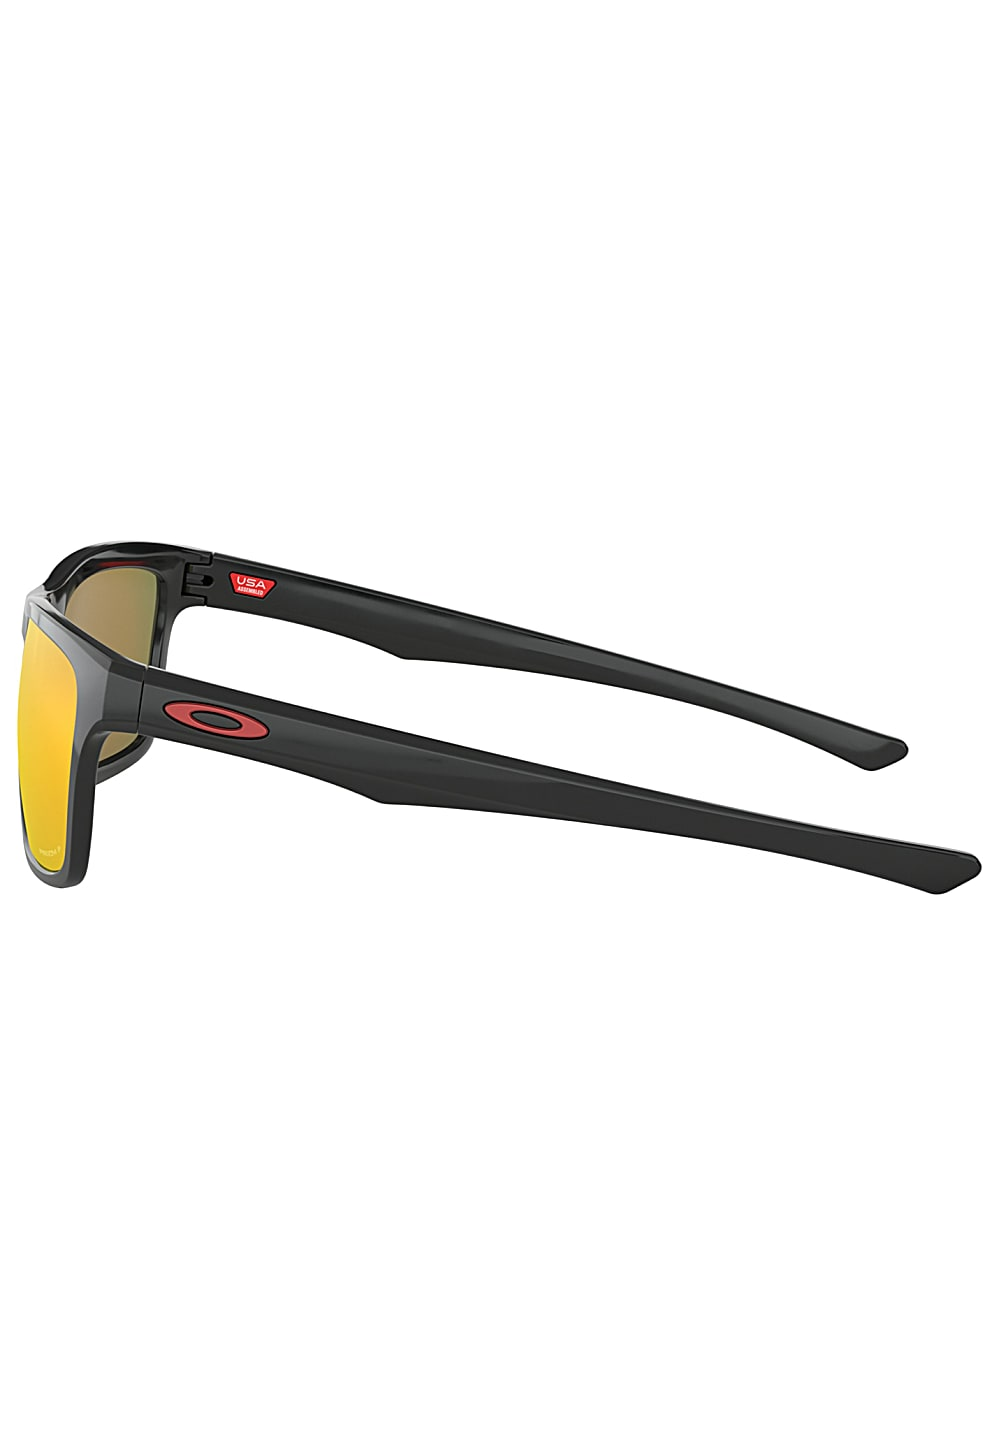 0e77f0fc443 OAKLEY Holston - Sunglasses for Women - Black - Planet Sports